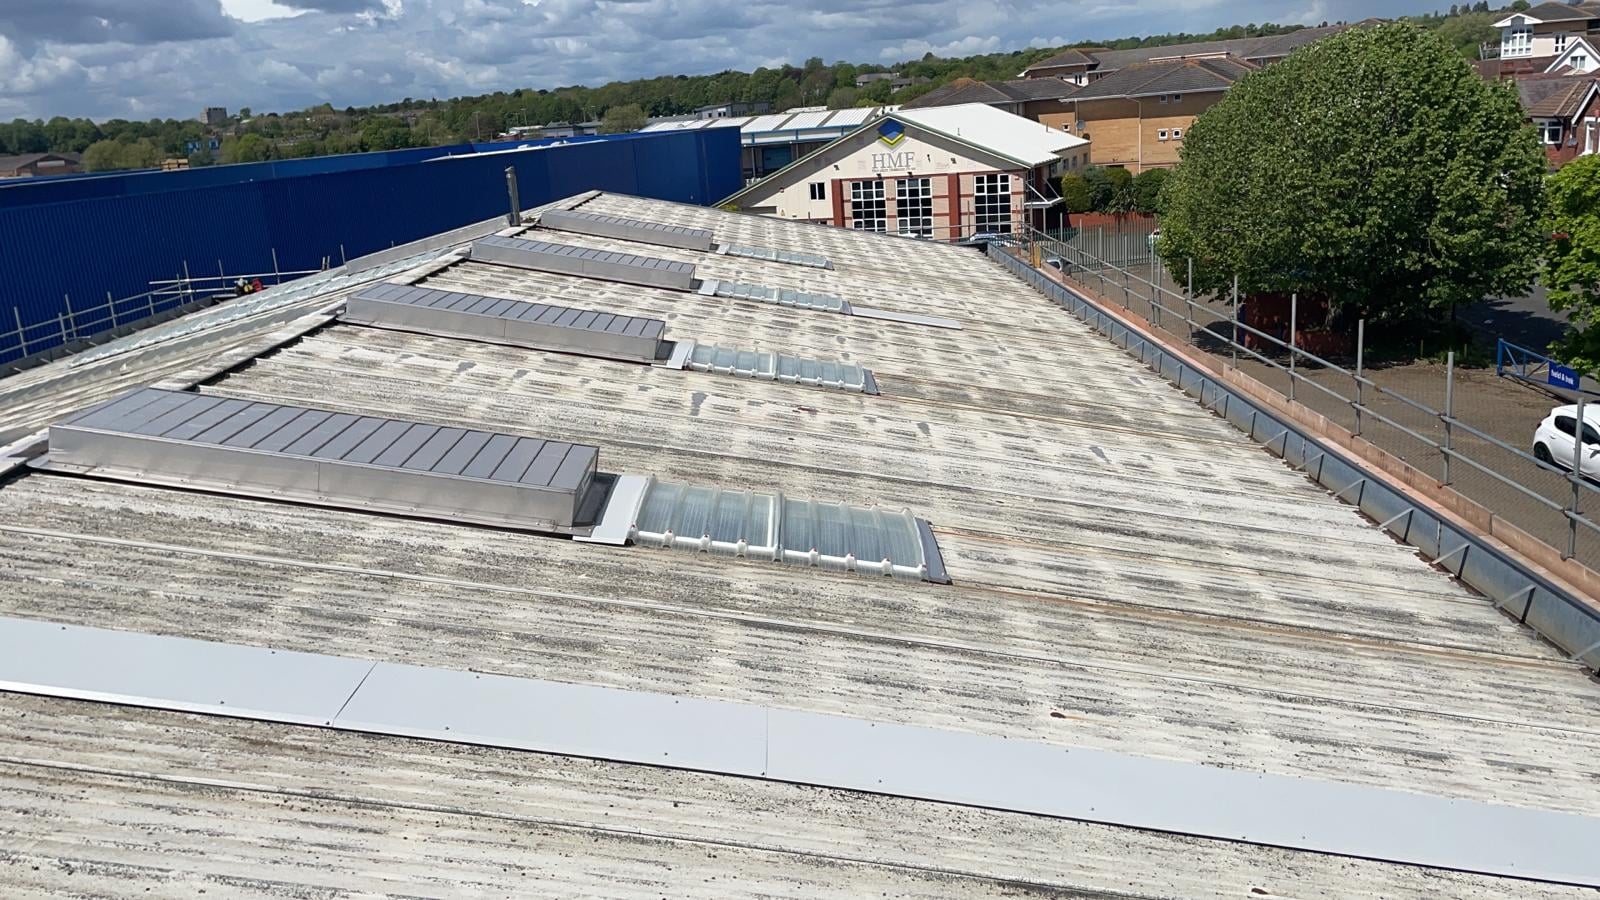 repair works to an empty retail industrial unit in Southampton Hampshire